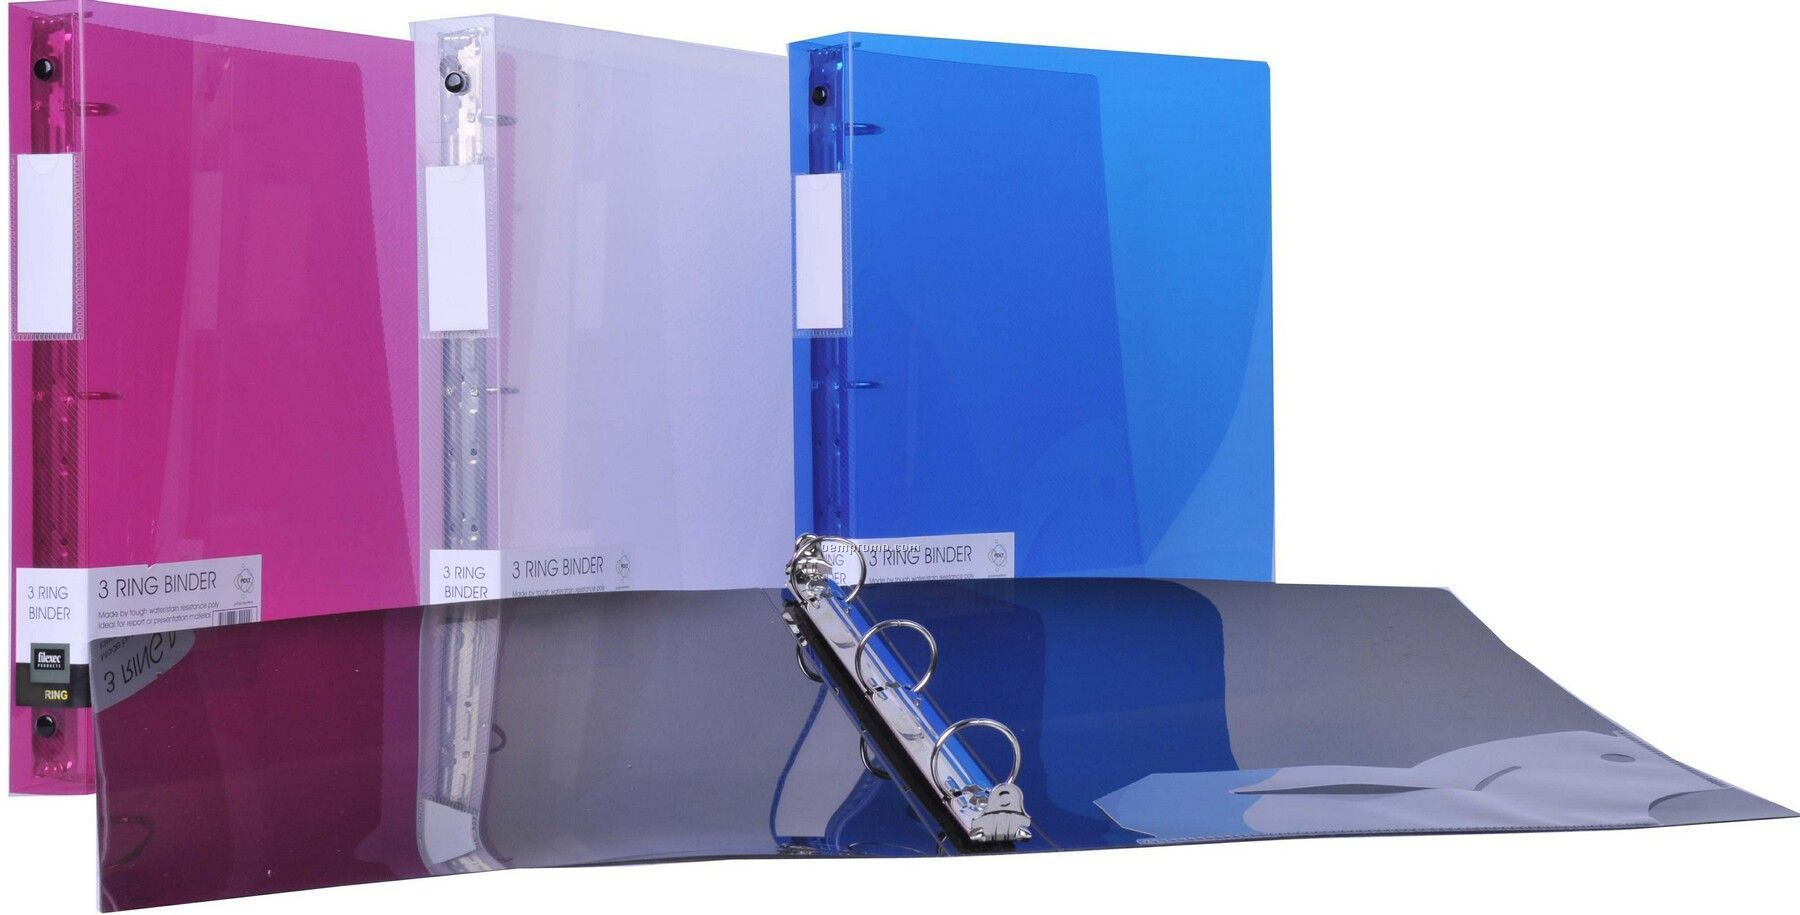 Help Your Brand Stand Out With The High Quality Customized Wholesale 3 Ring Binders Available At Unikeep From Rings Pocke Business Binders Binder Custom